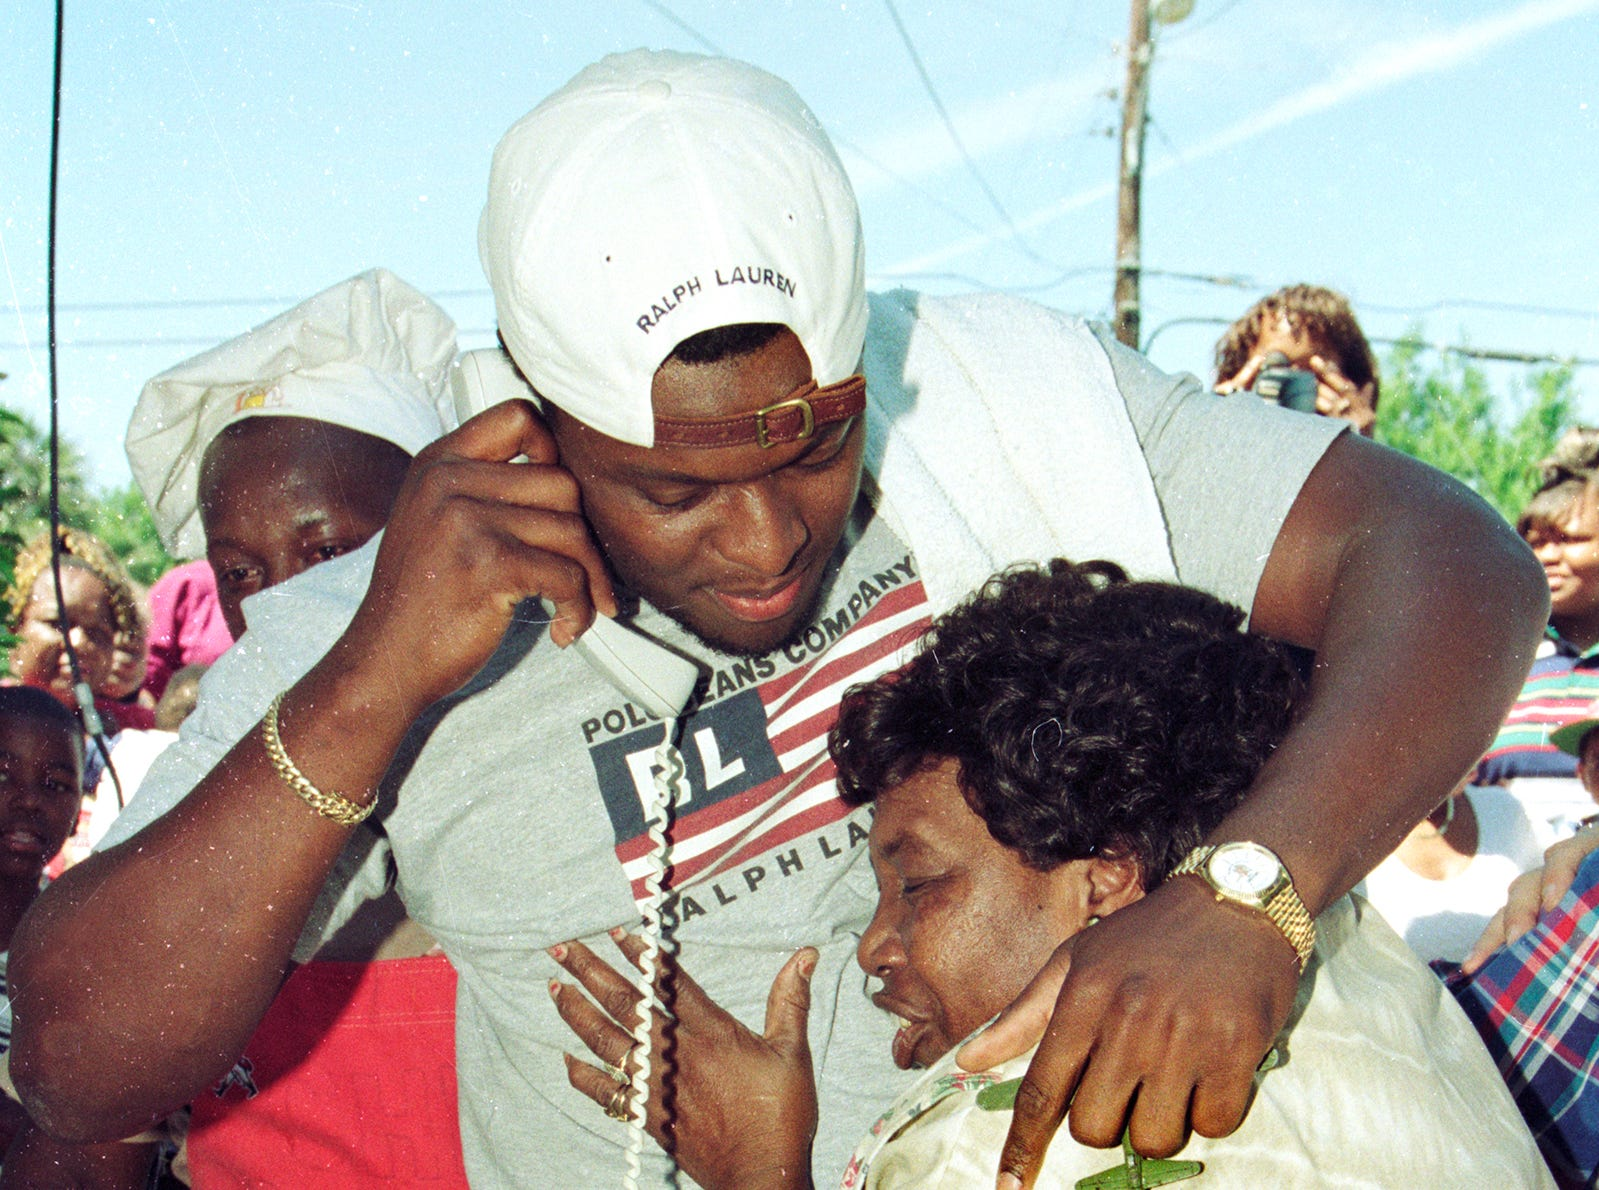 April 19, 1997 - Kenny Holmes gets a hug from his grandmother, Mary Ann Smith, as he talks with the Houston Oilers after the NFL team made him their number one draft pick. The Oilers made Holmes the 18th overall pick in the first round of the NFL draft. More than 50 friends and relatives gathered at the Holmes' residence in Gifford for a barbecue so they could watch the draft together. He was a defensive end standout at both Vero Beach High School and the University of Miami.